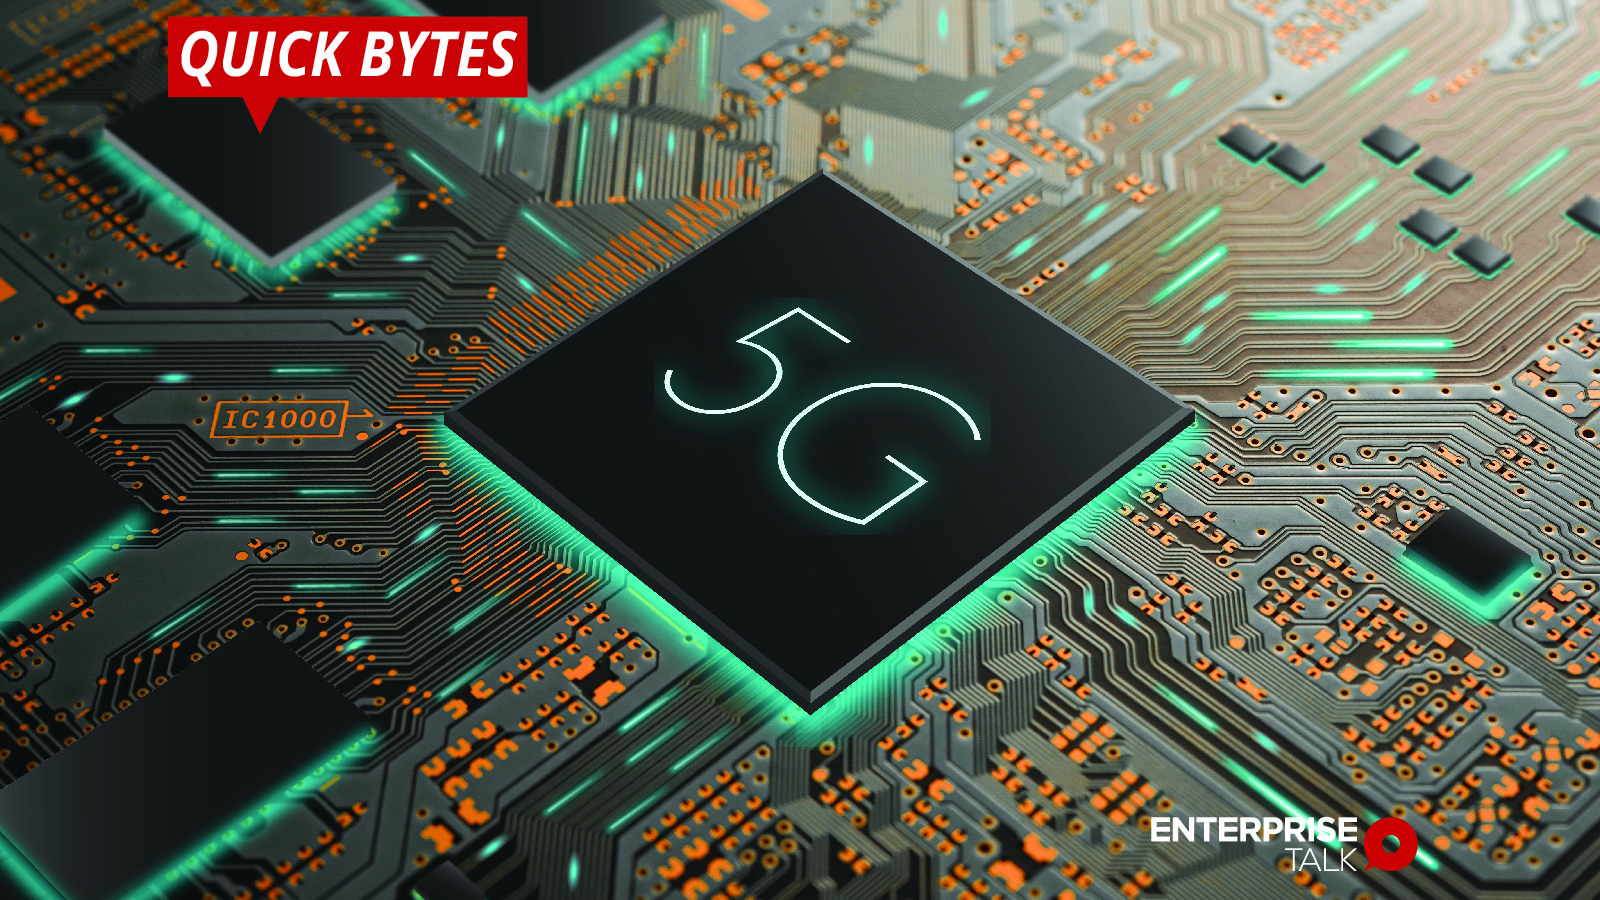 Samsung, Xilinx, 5G, chips, ACAP, 5G network, low power consumption